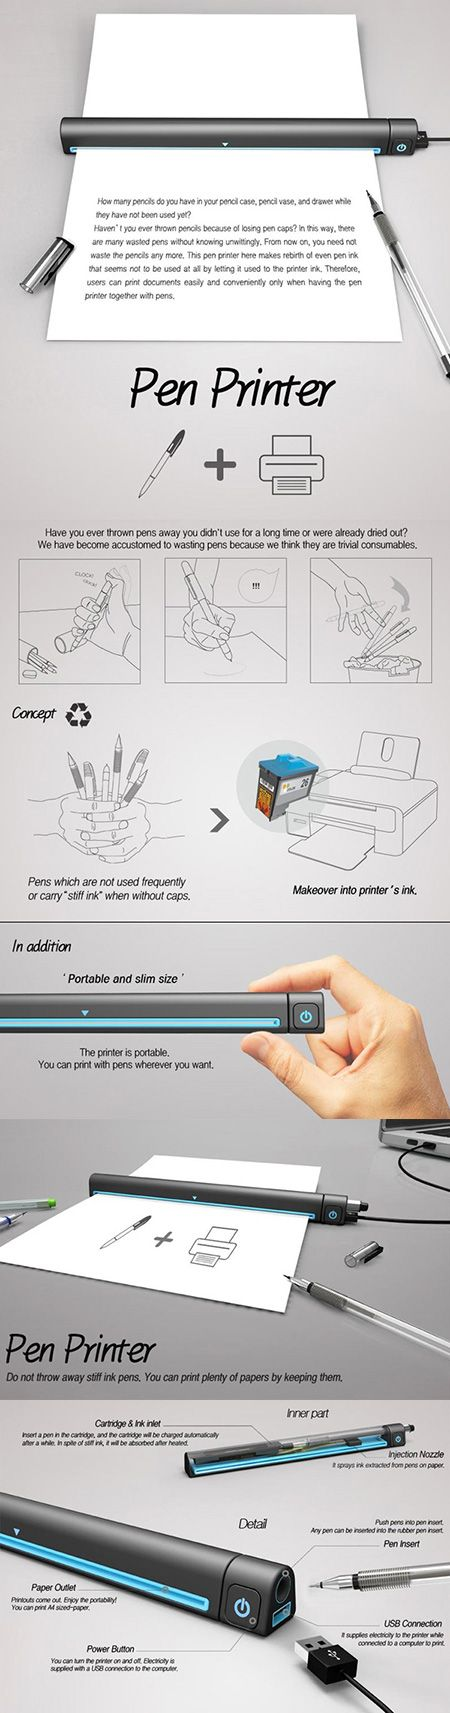 The device uses the ink from discarded pens to print on paper | Construção de Sites | Web Design - www.novaimagem.co.pt